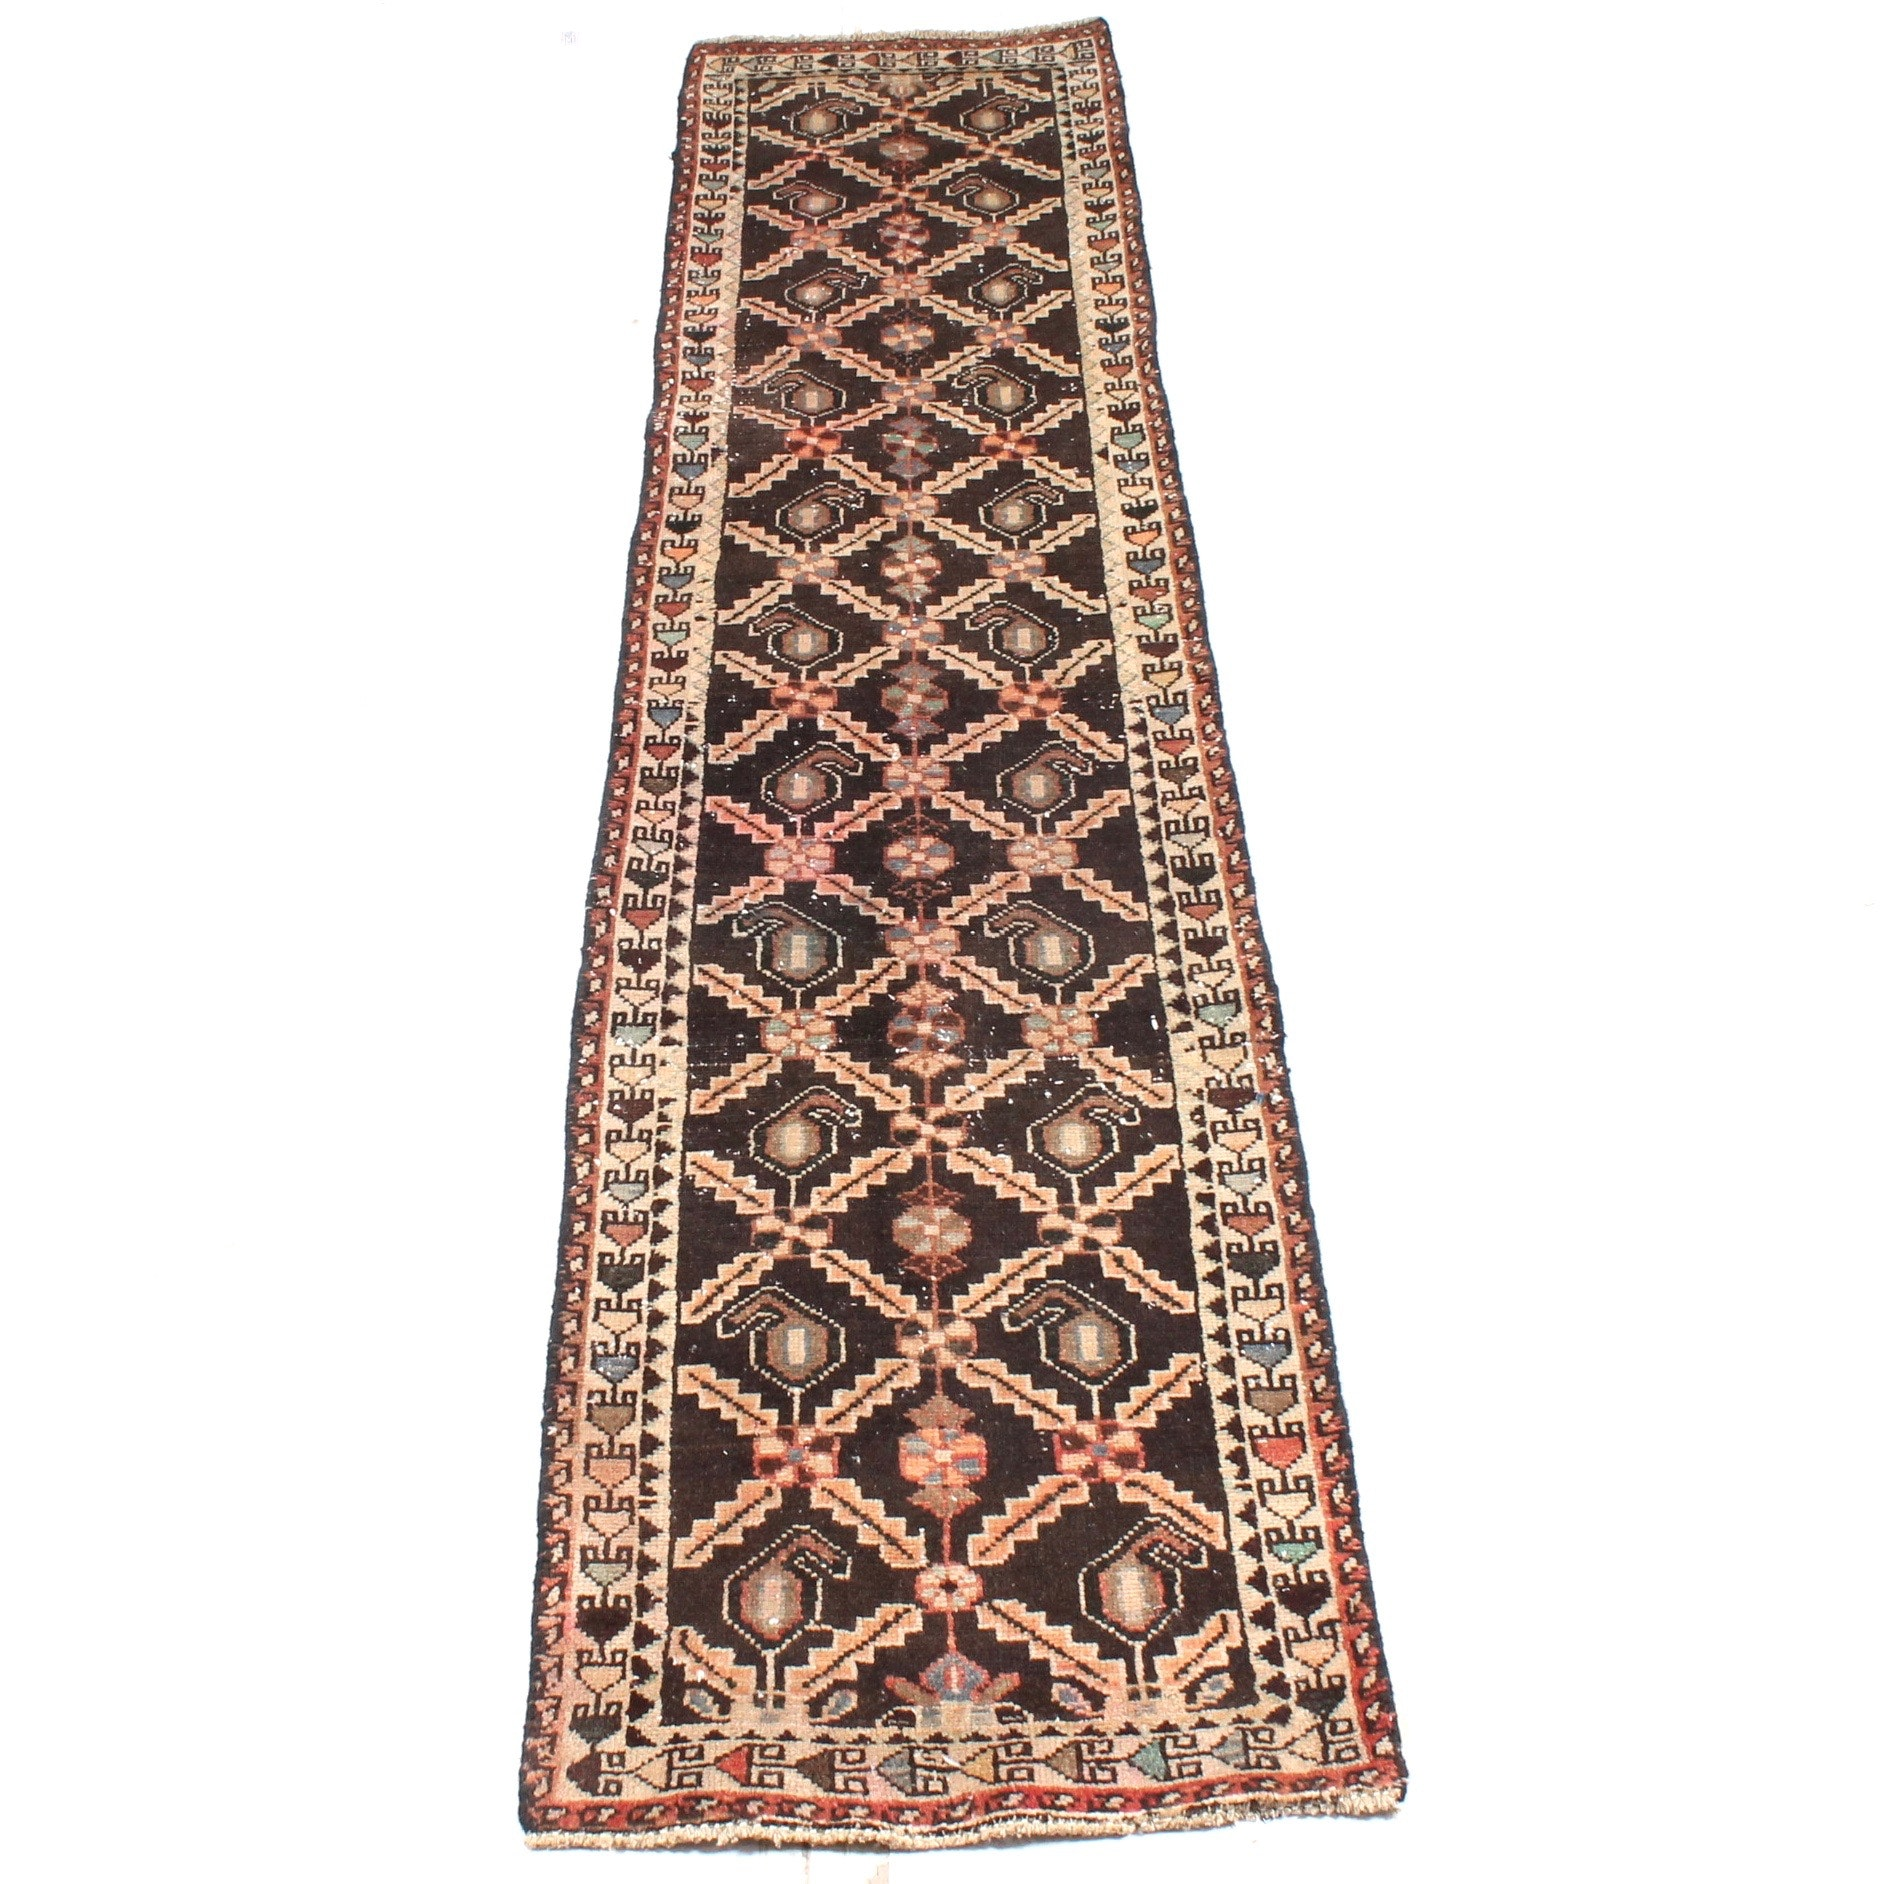 2' x 7' Vintage Hand-Knotted Persian Qashqai Runner